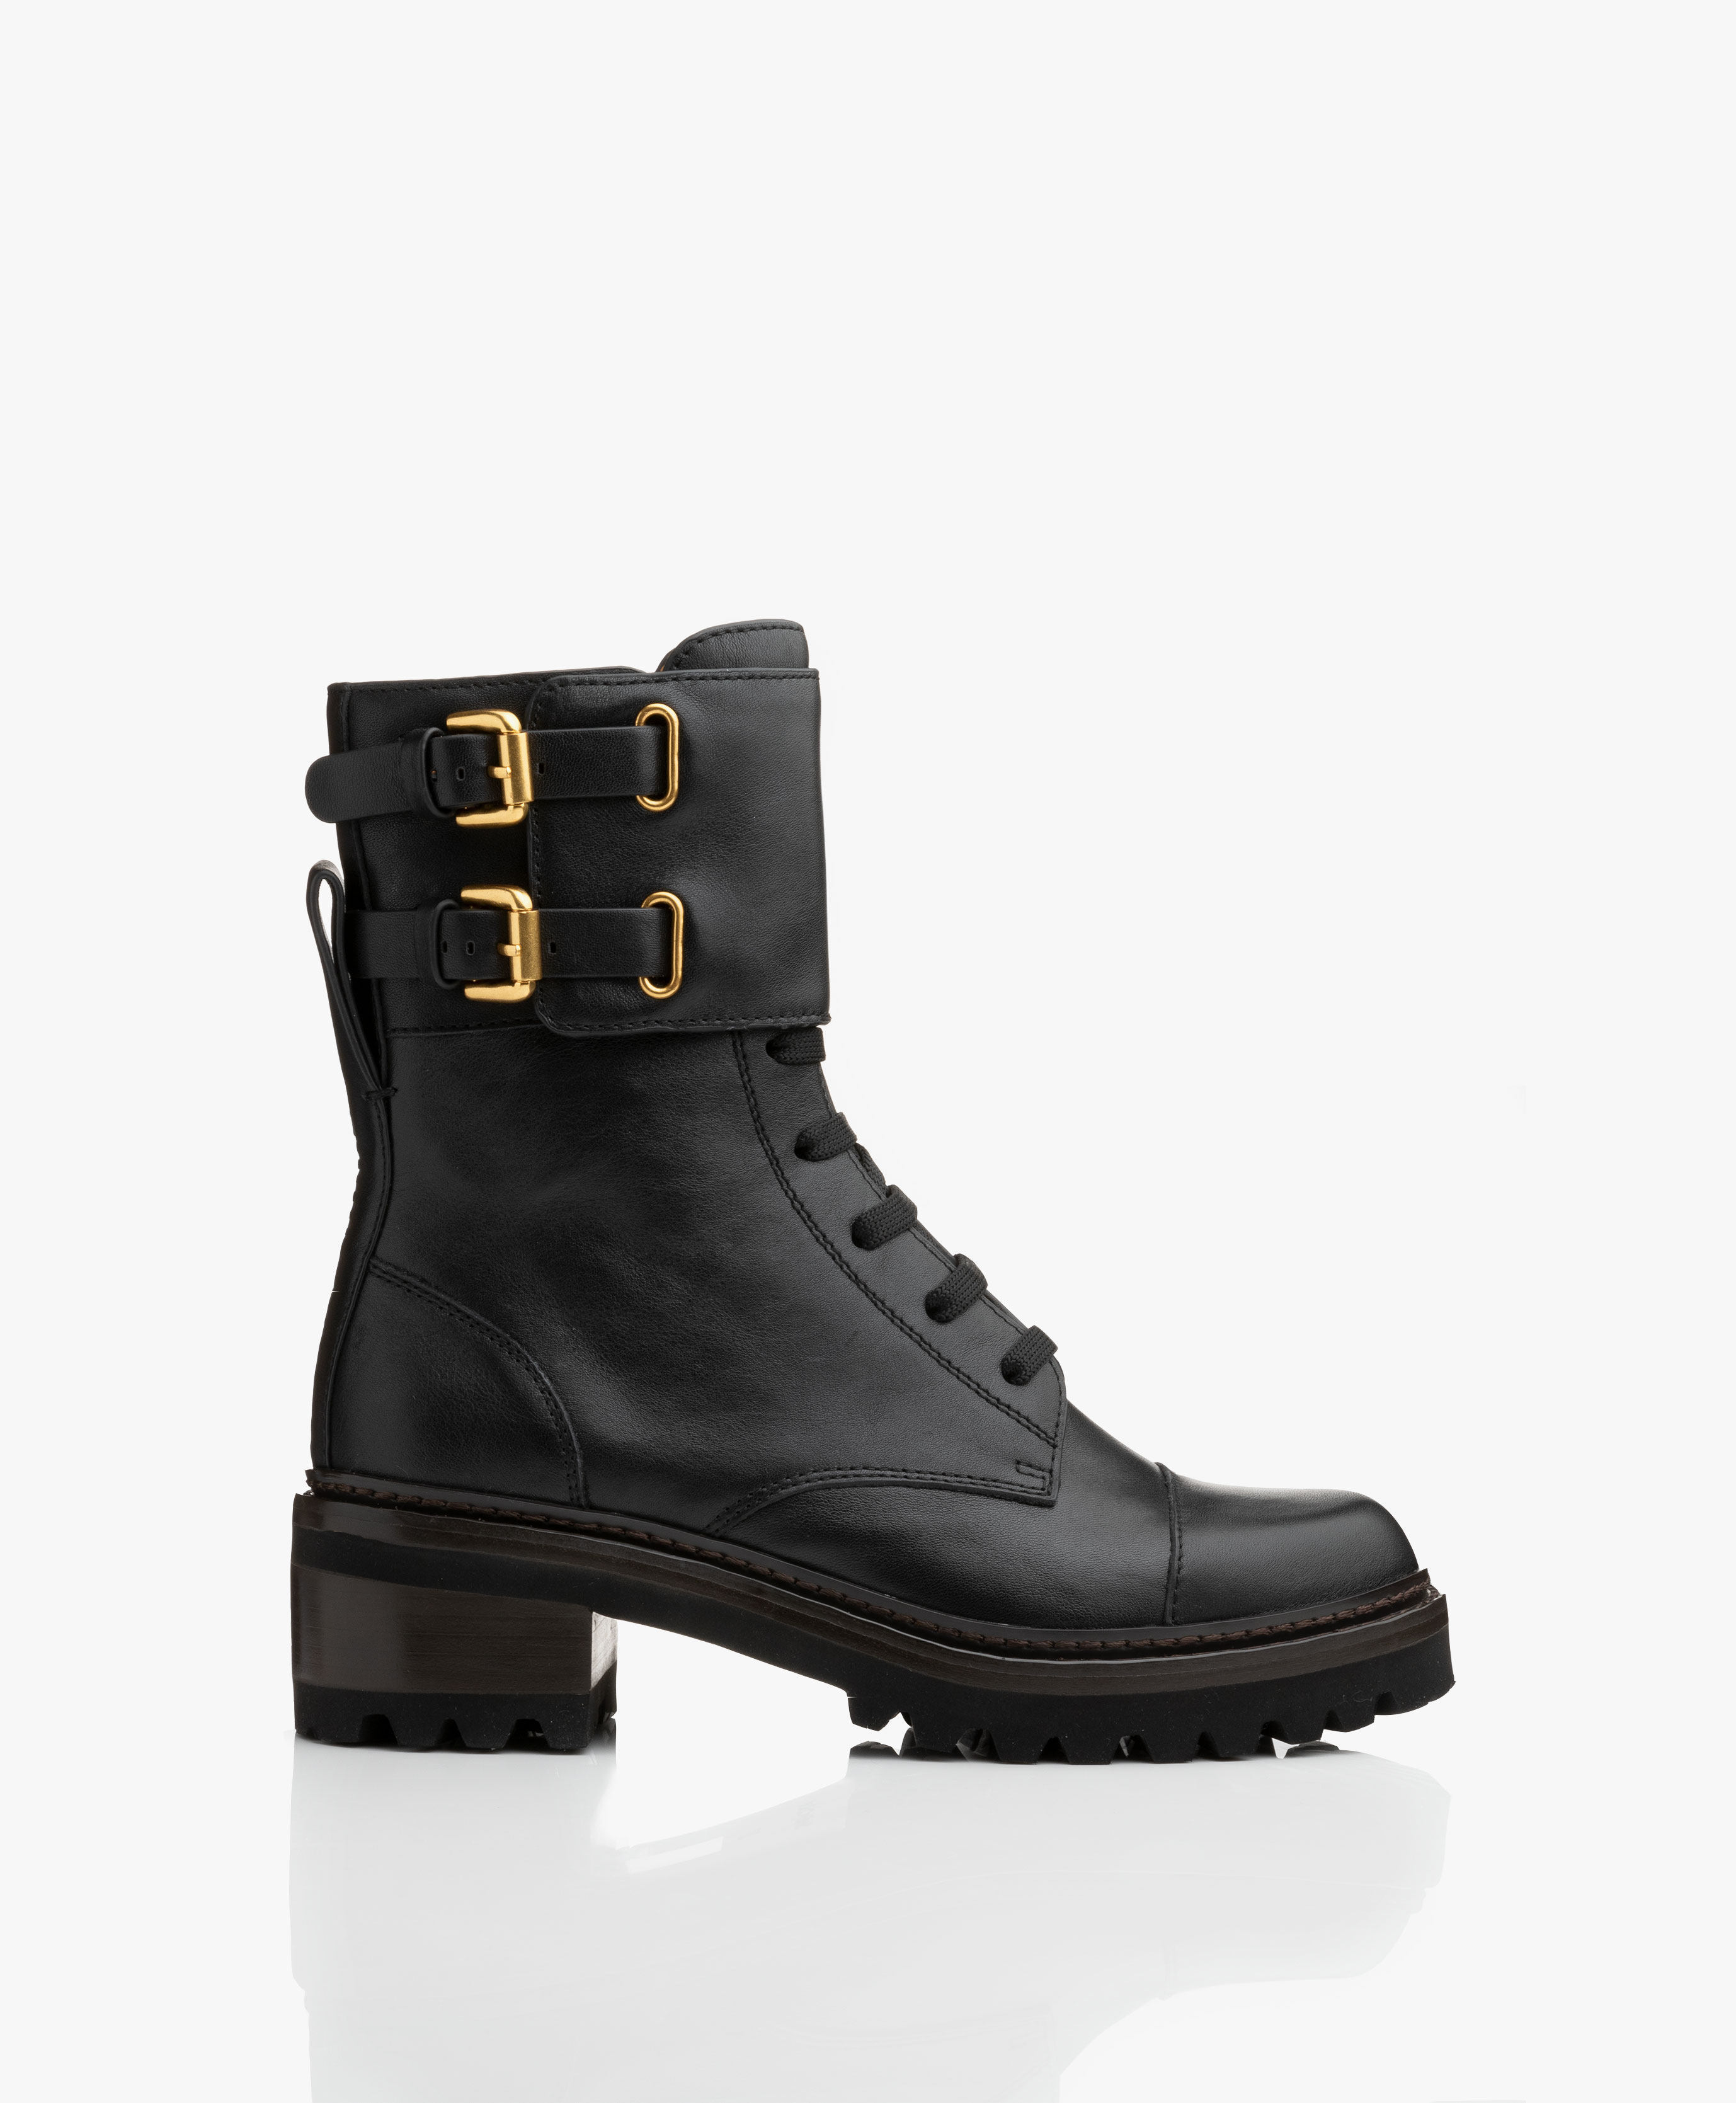 184475c6fd See by Chloé Mallory Leather Combat Boots - Black - sb33080a 10140 ...